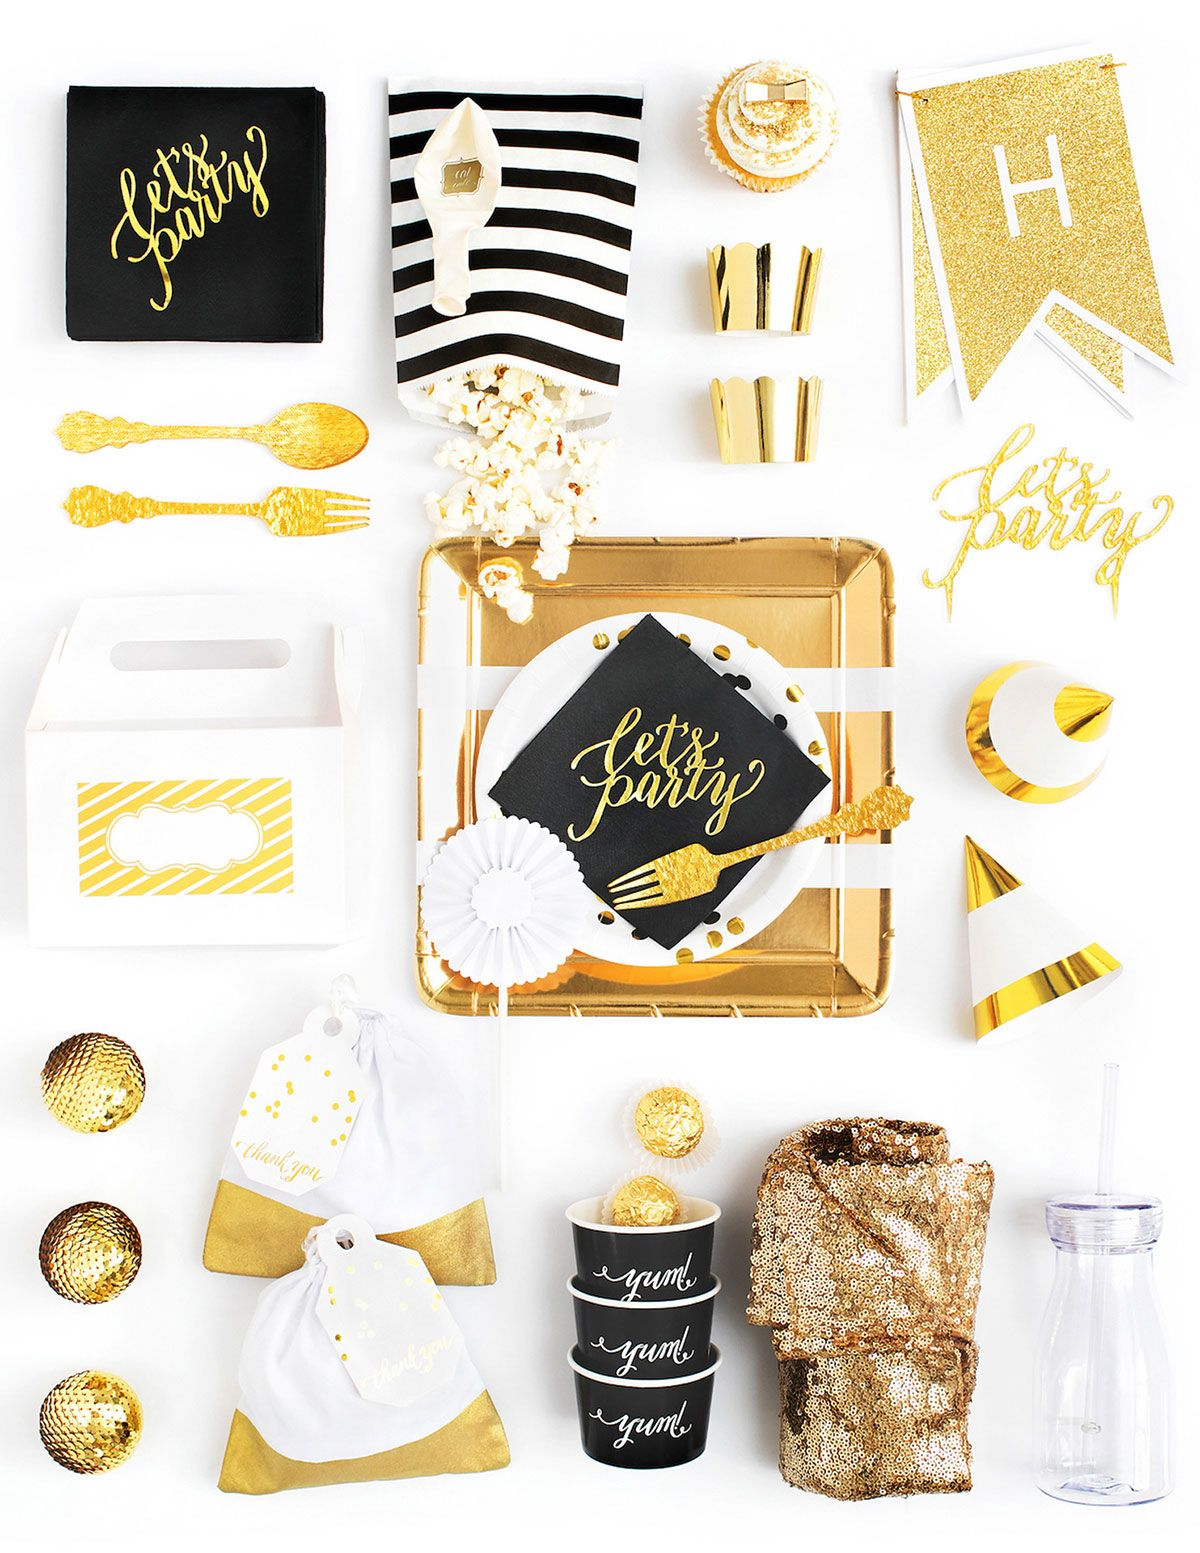 Black White And Gold Party In A Box Black Gold Party Party In A Box Gold Party